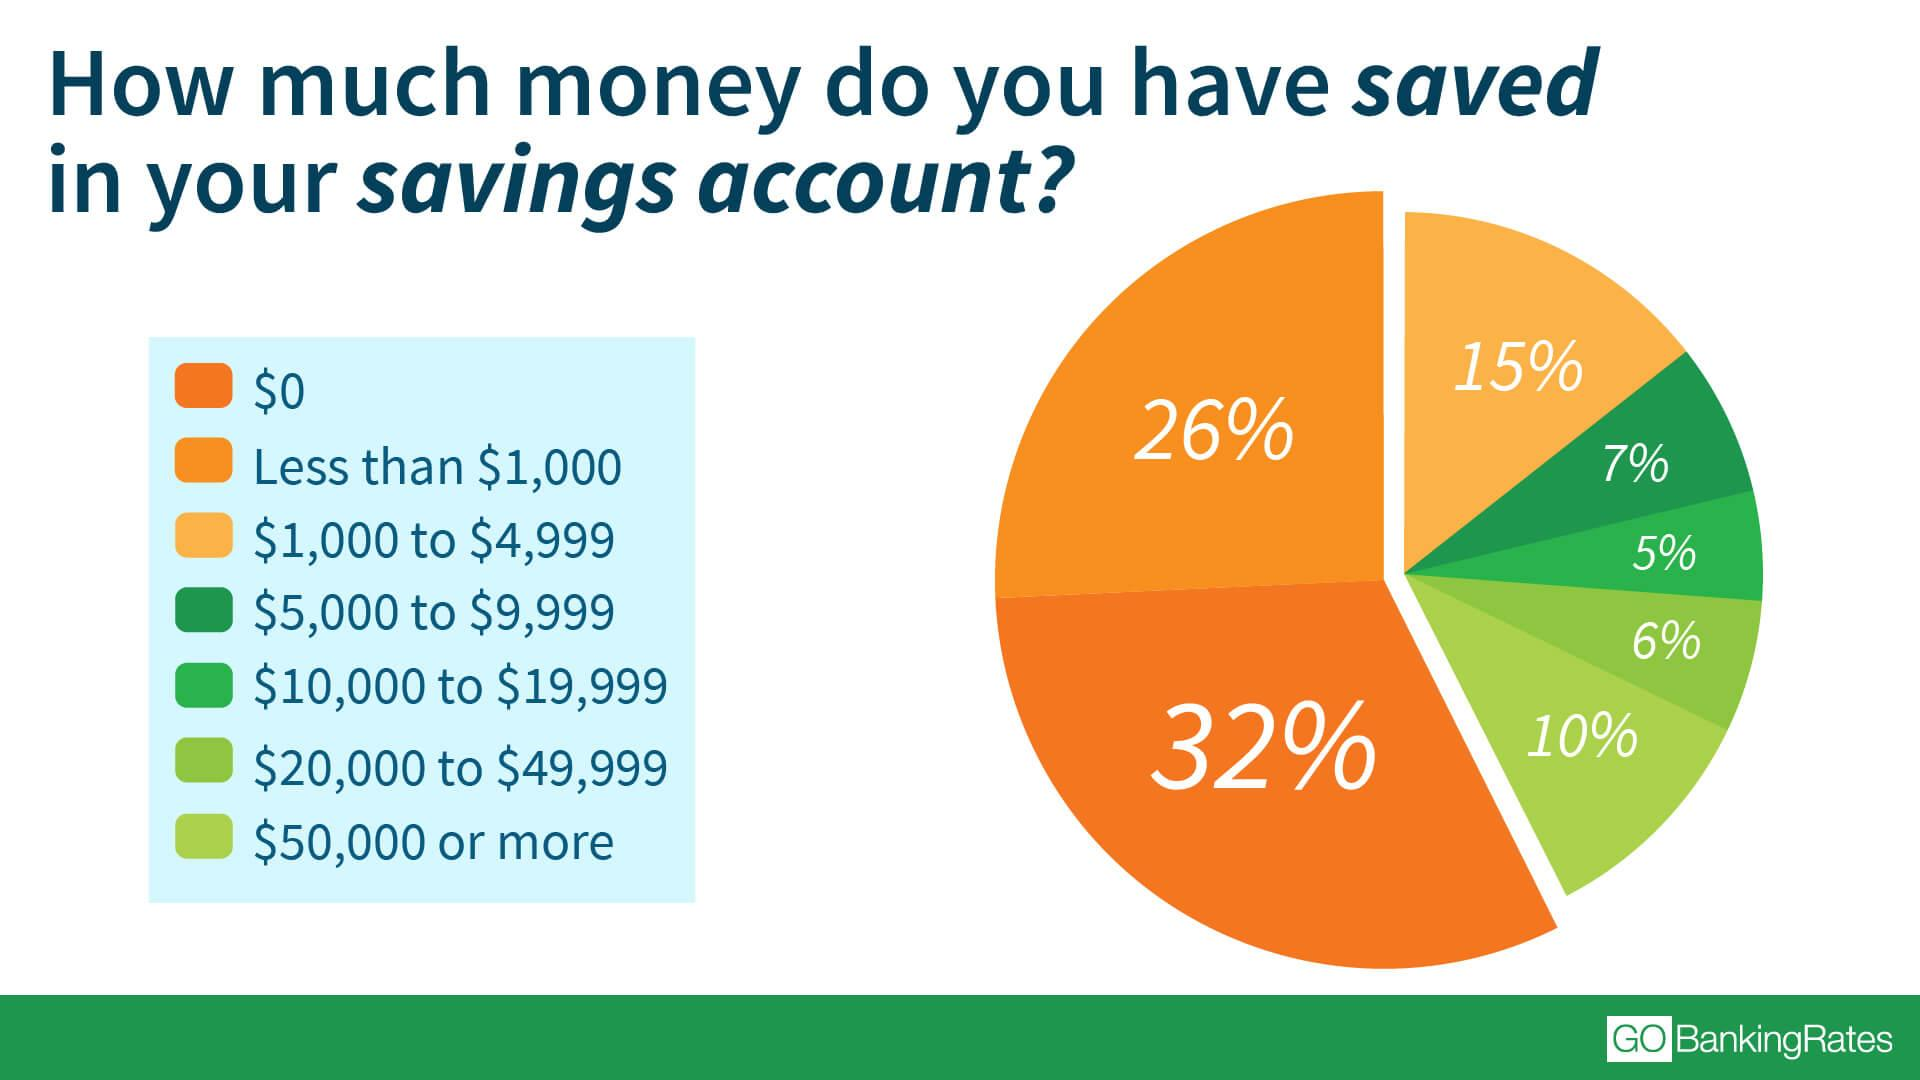 58% of Americans Have Less Than $1,000 in Savings, Survey Finds